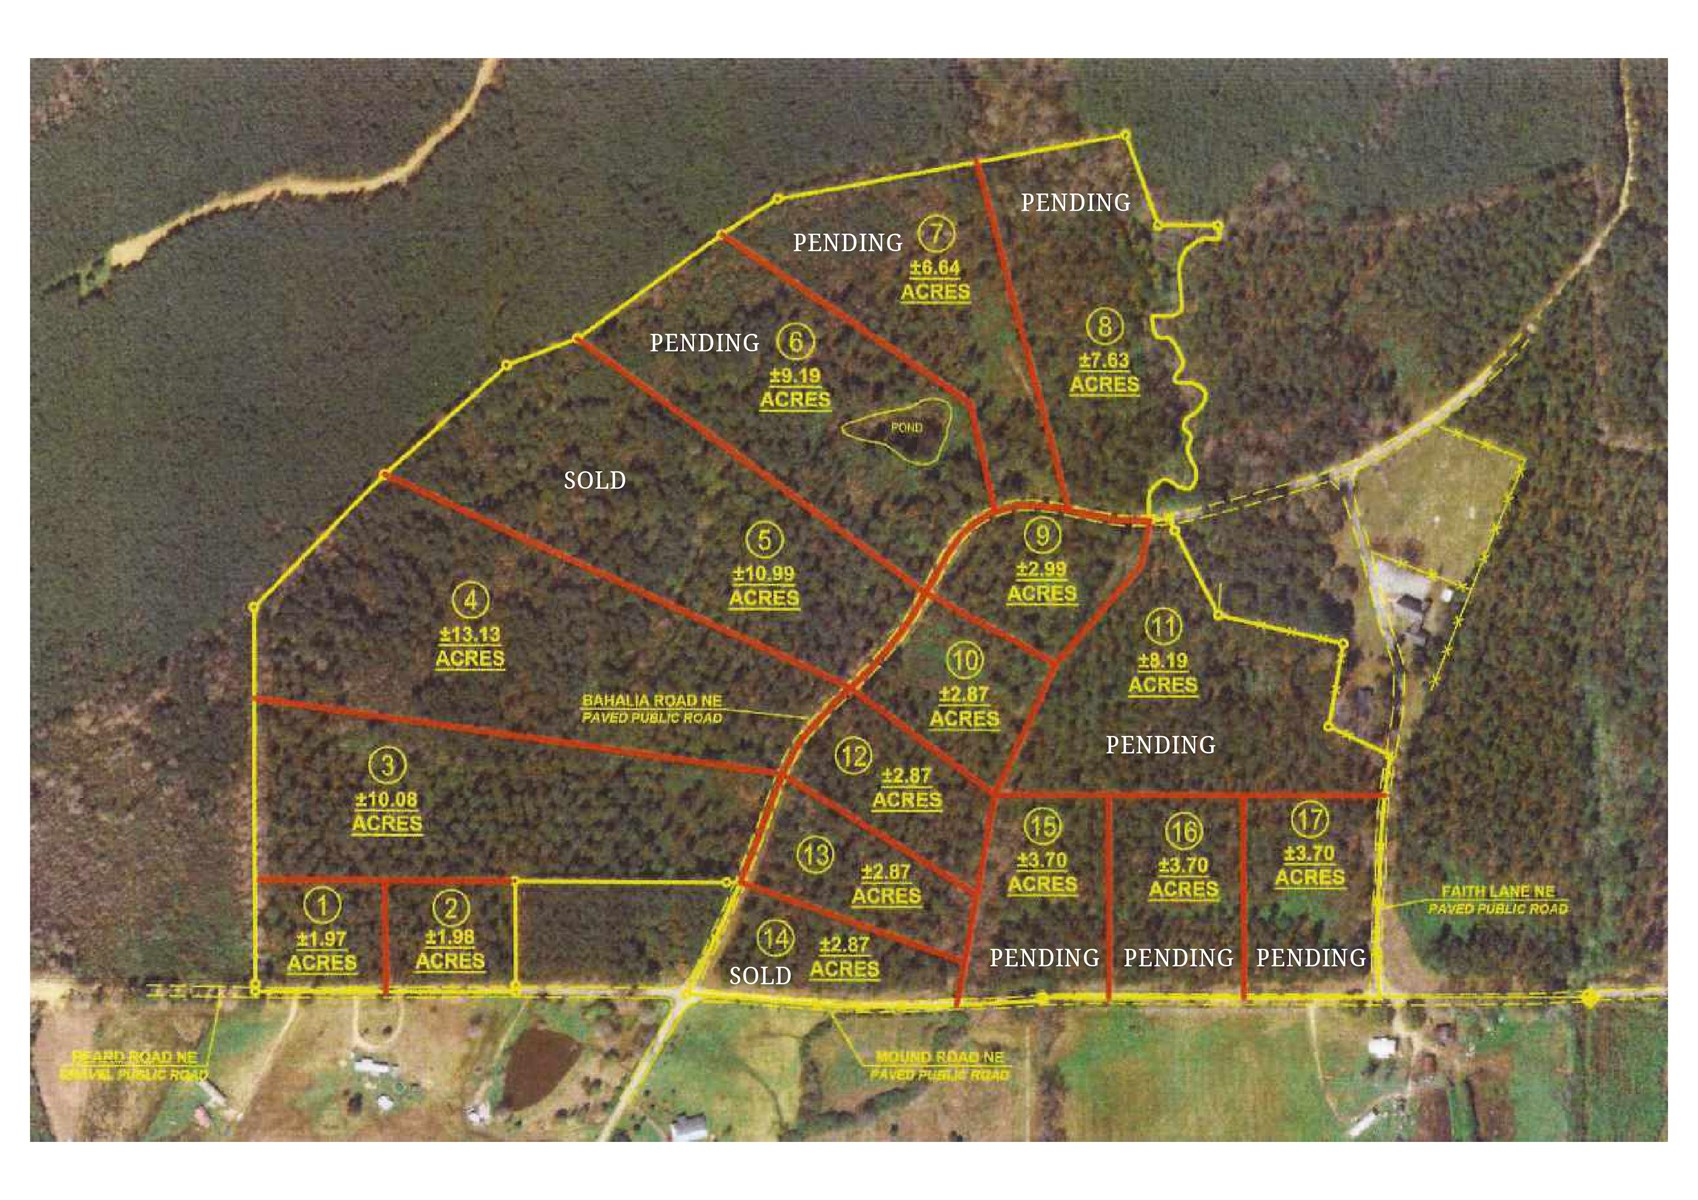 Rural Land for Sale in Lincoln County, MS